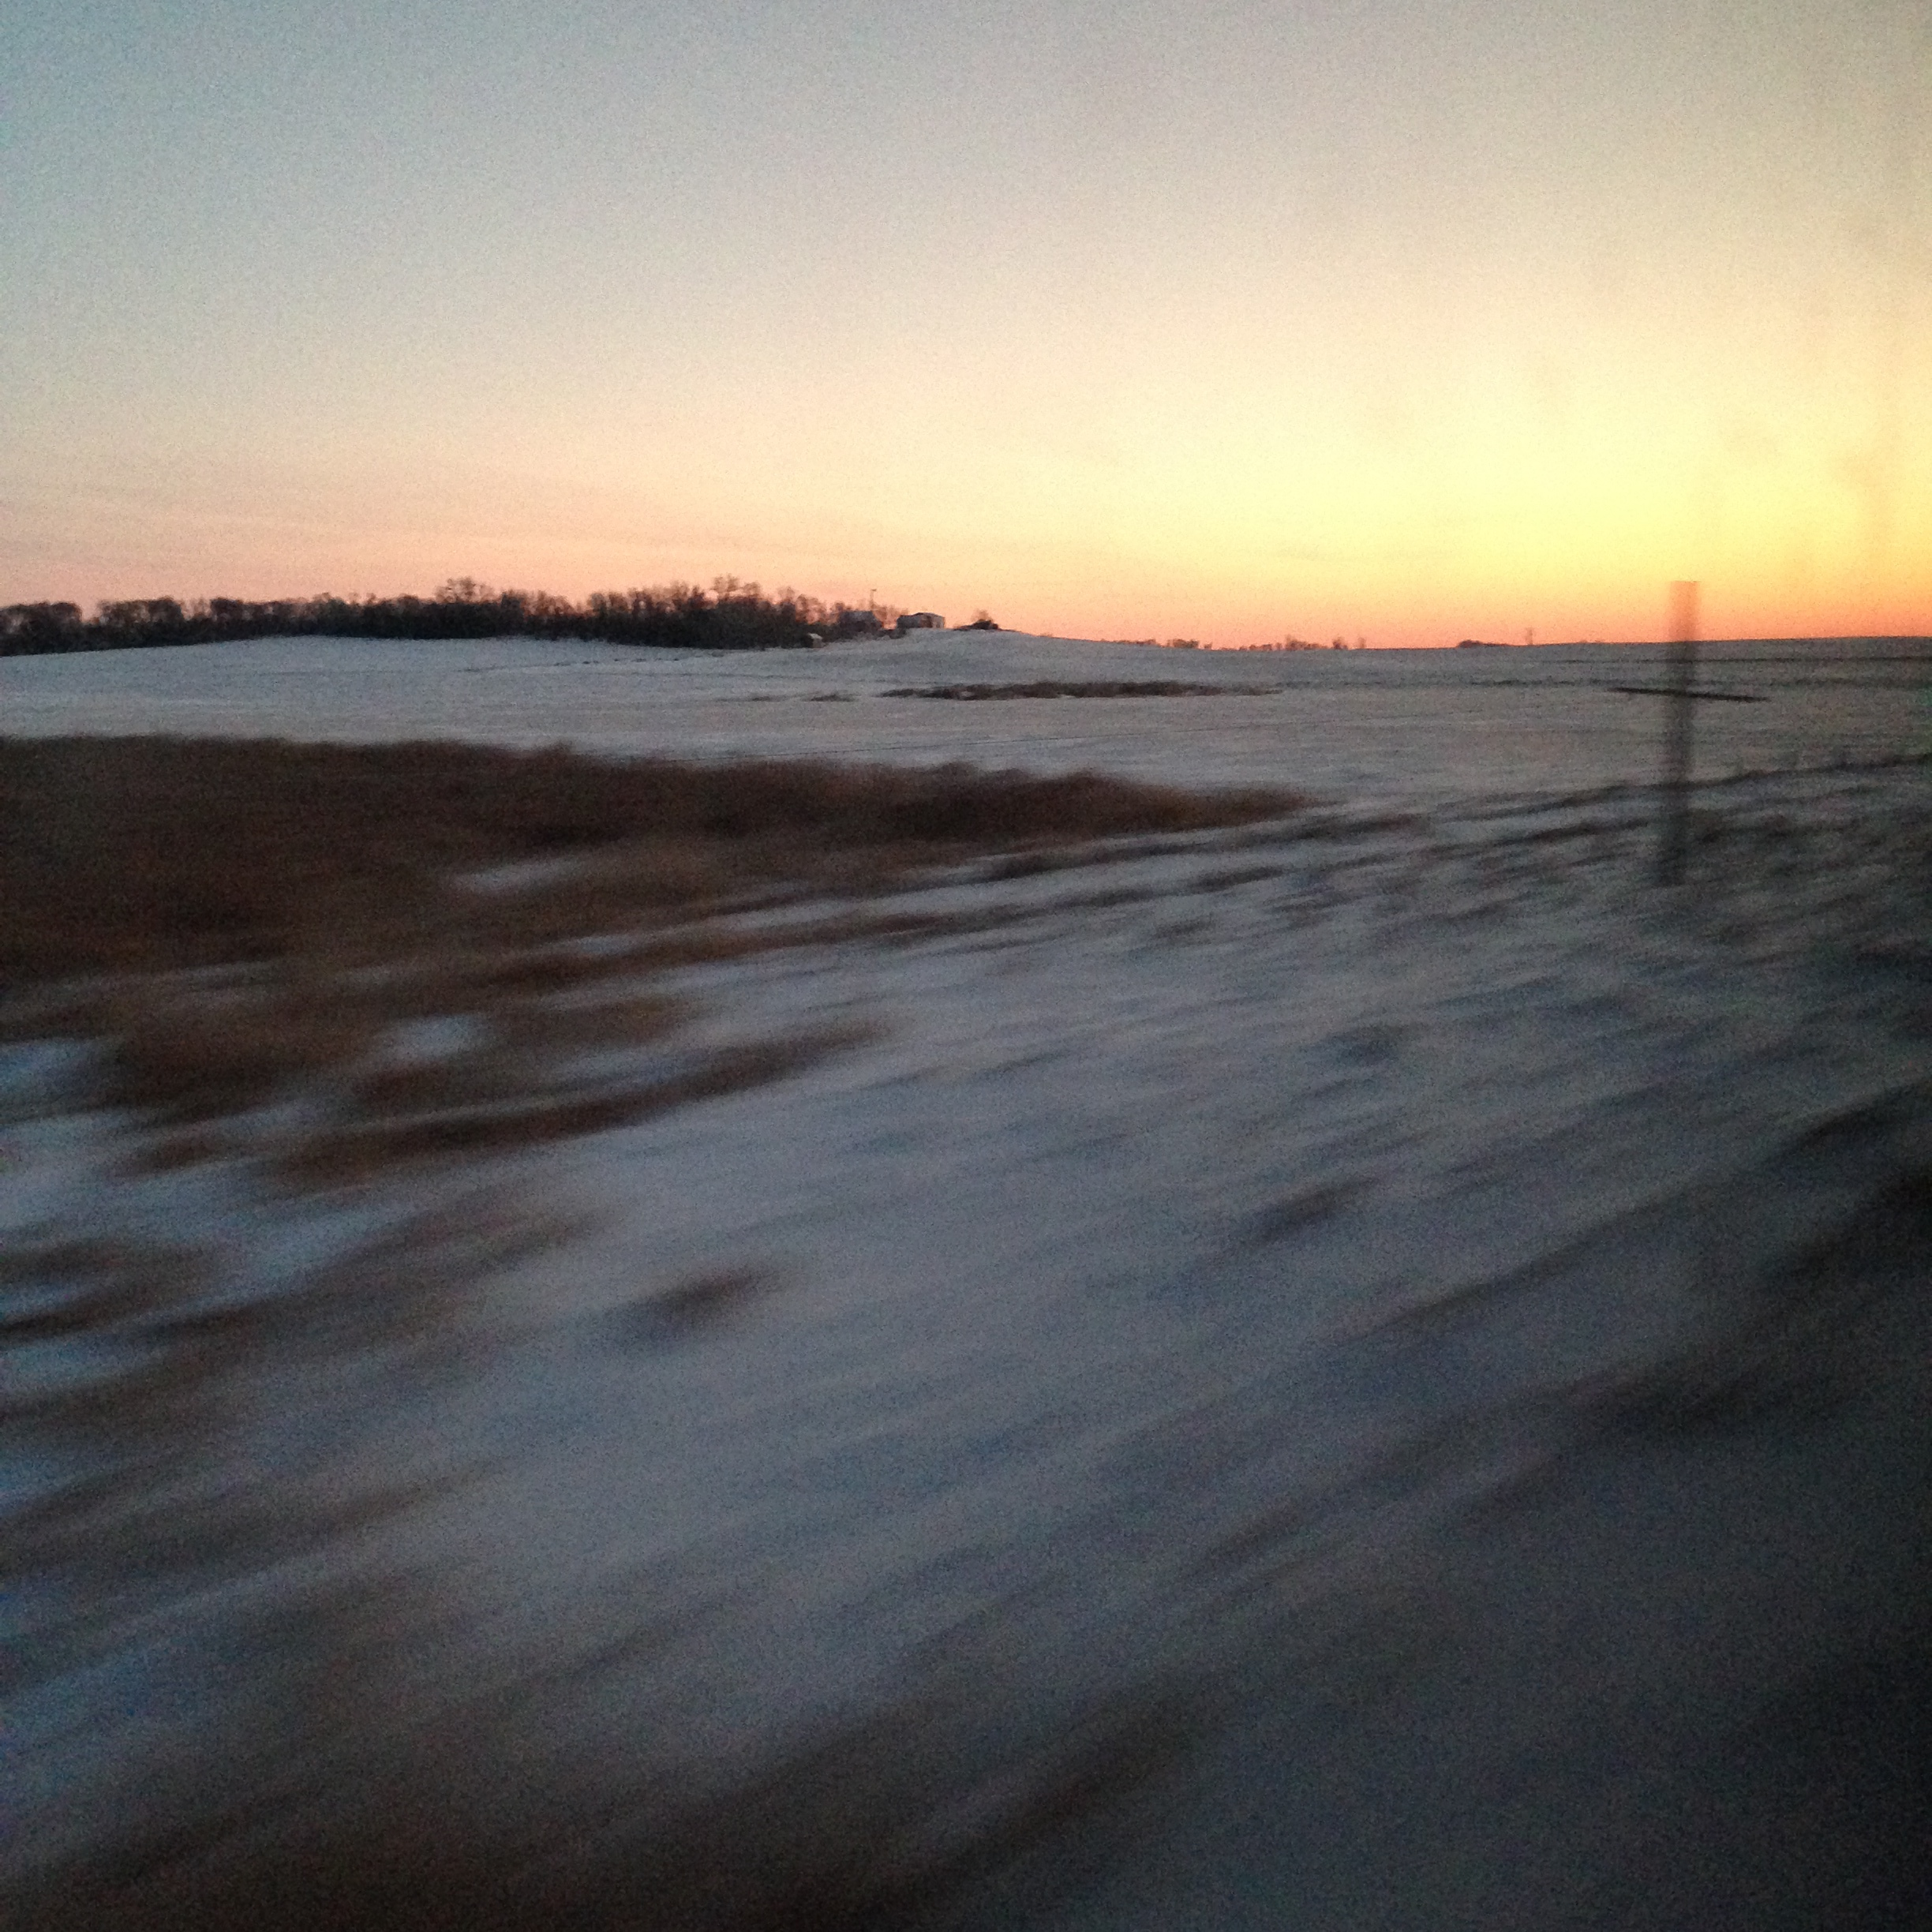 Sunset over North Dakota